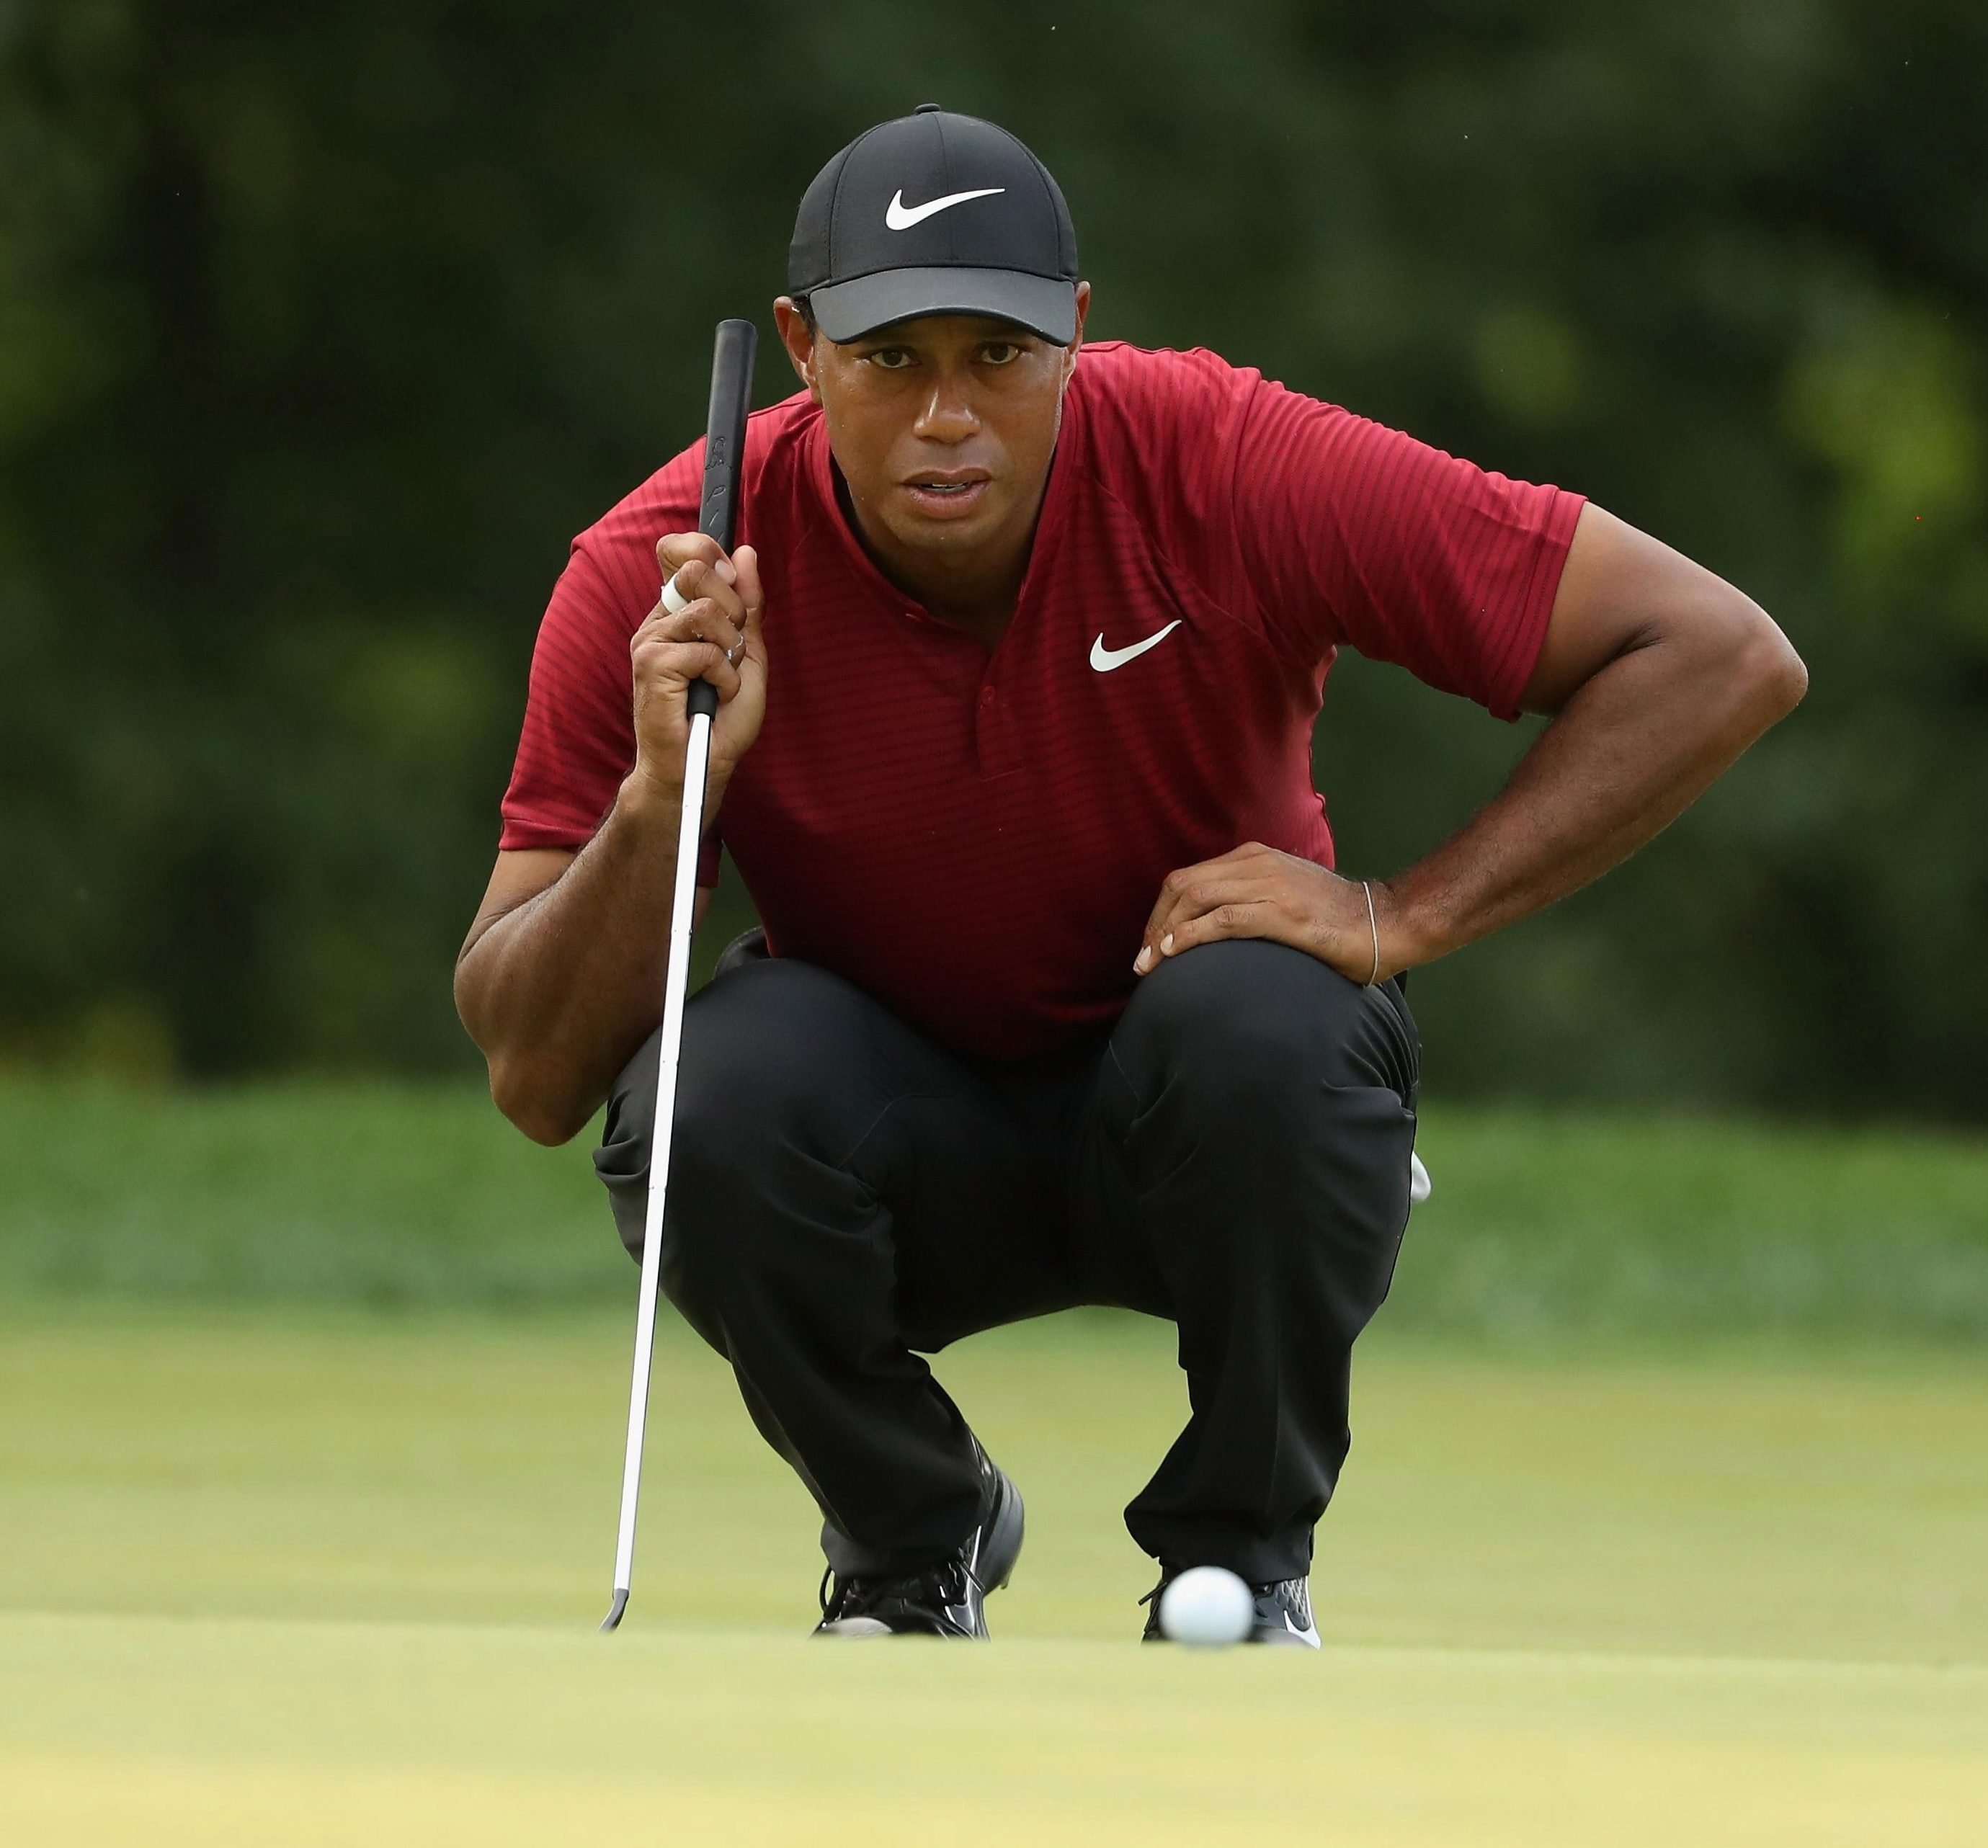 Fourteen-time Major winner Tiger Woods is eyeing a place in a very strong USA team for Paris